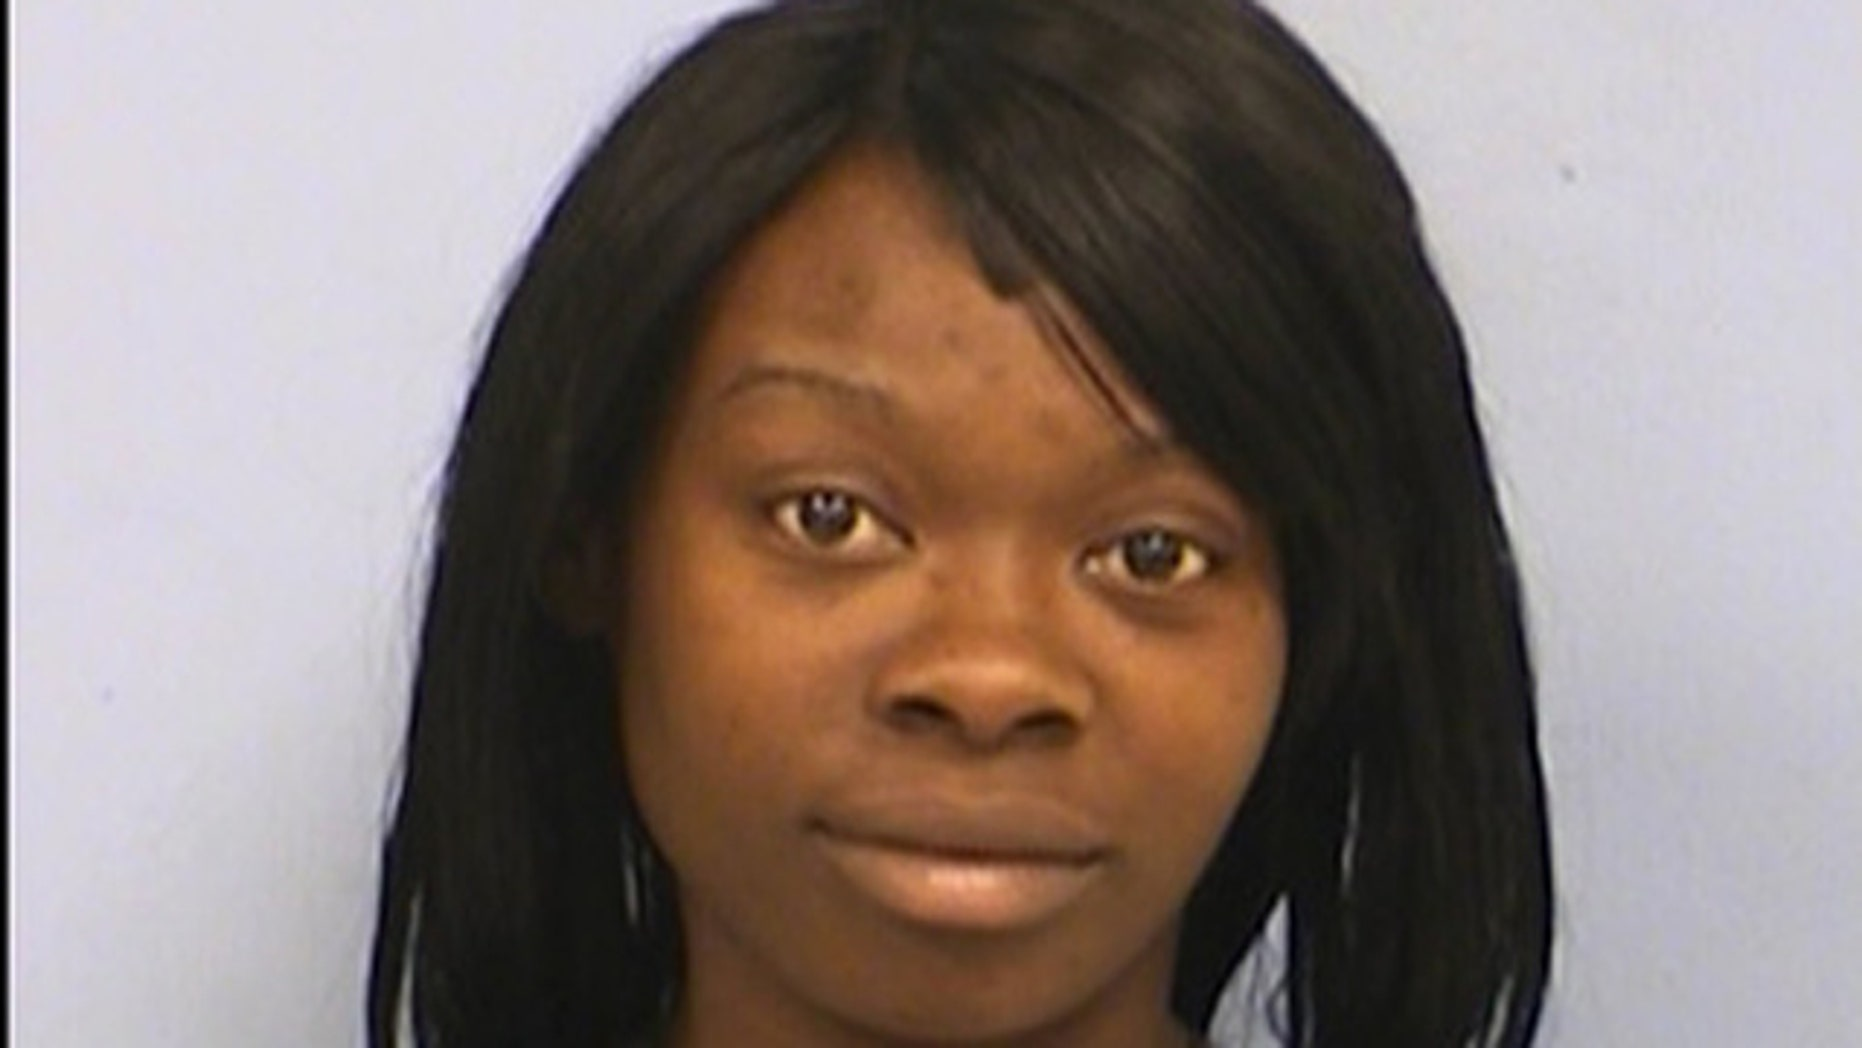 Johnisha Terry, 22, who had three outstanding warrants, was talking to police when her son allegedly asked police if they found her weed.